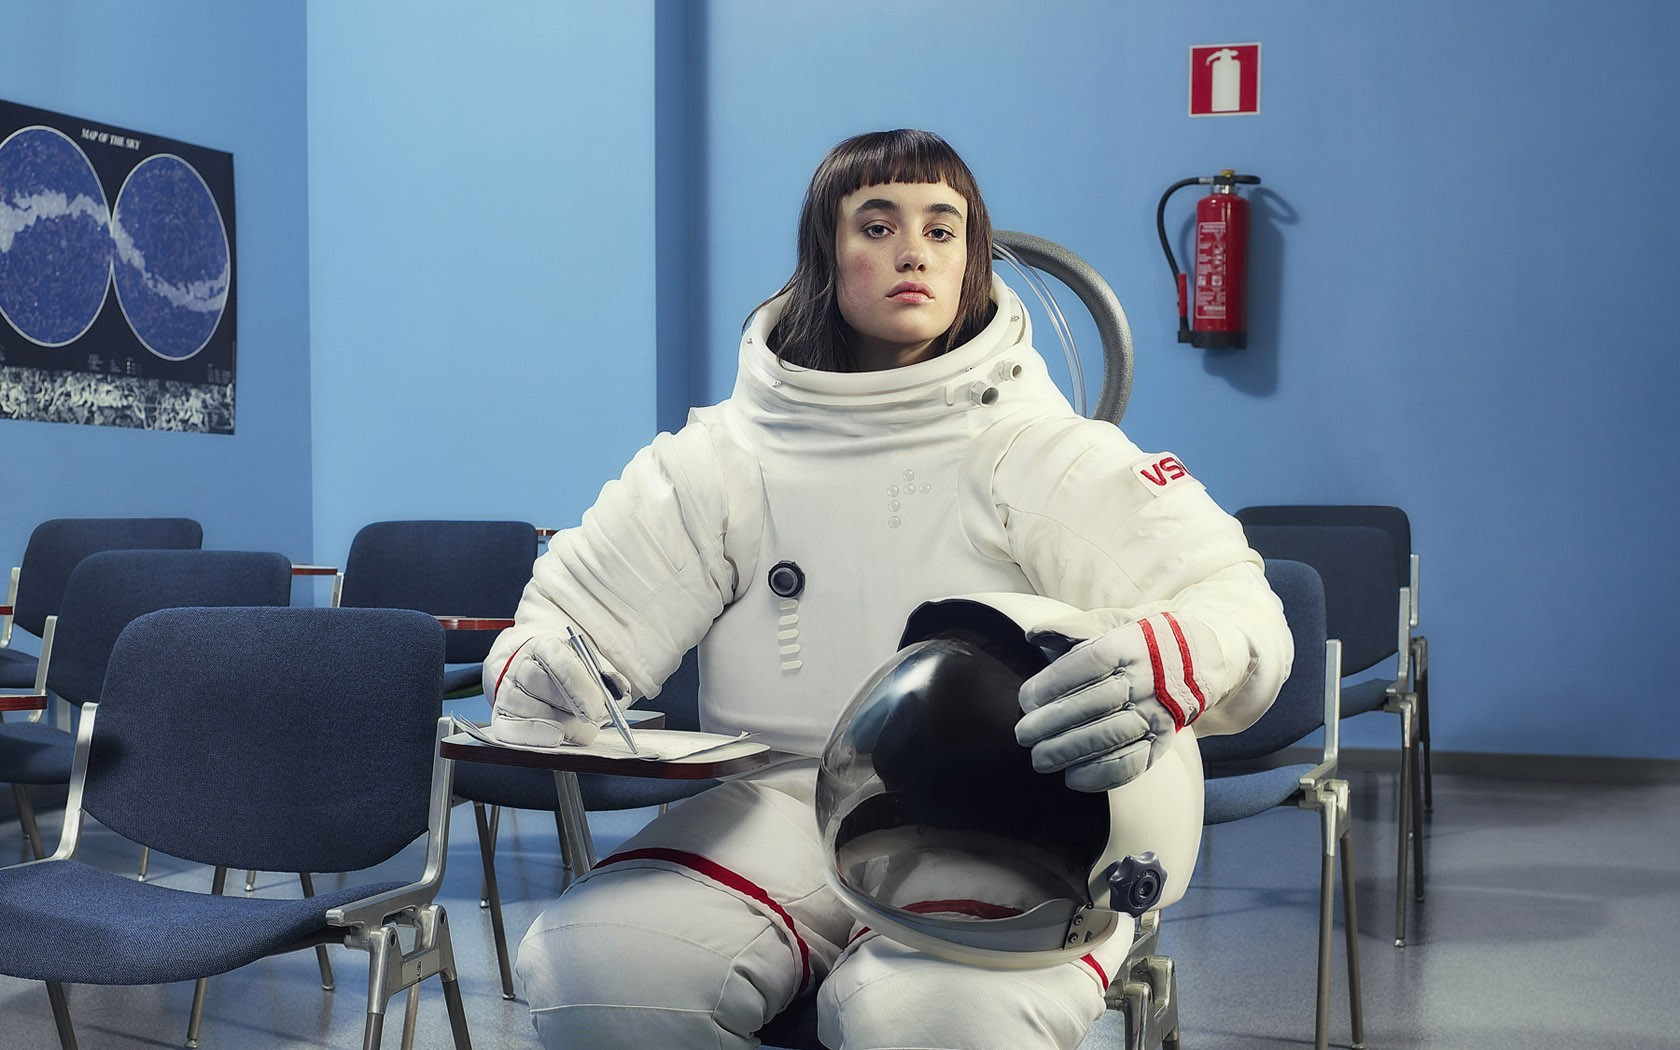 woman in tight space suit - photo #19